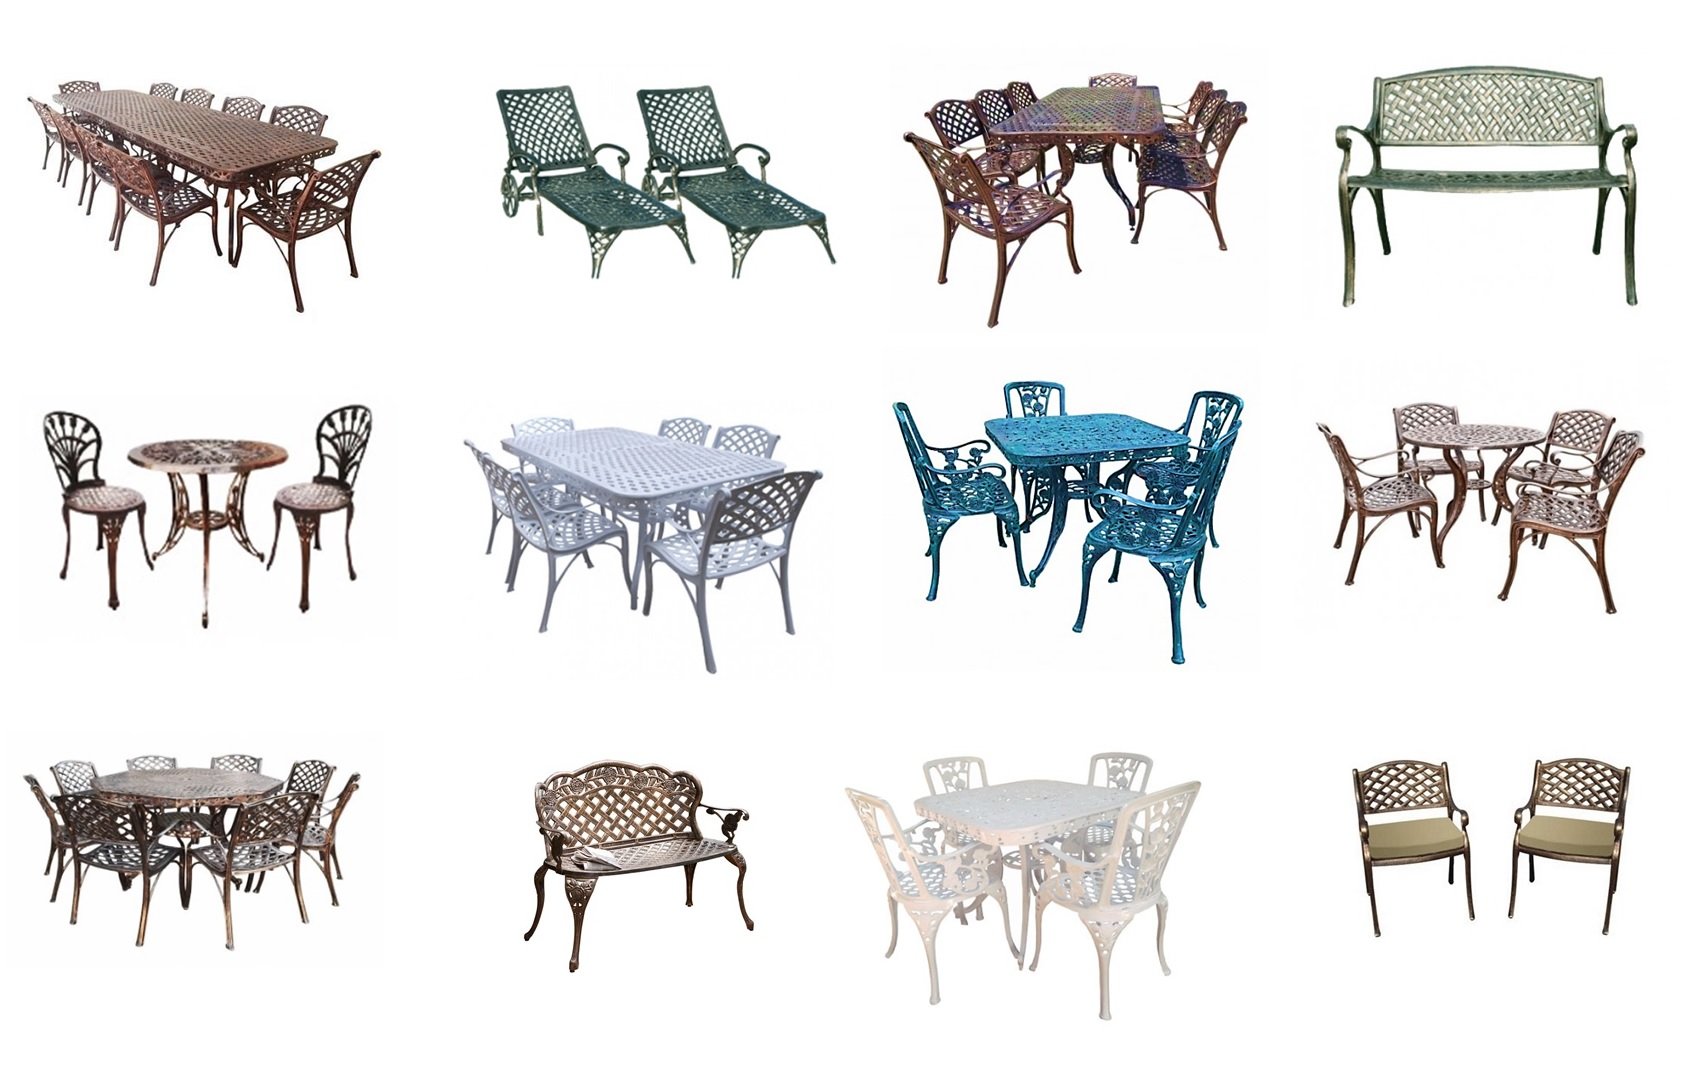 Cane Patio Furniture Durban